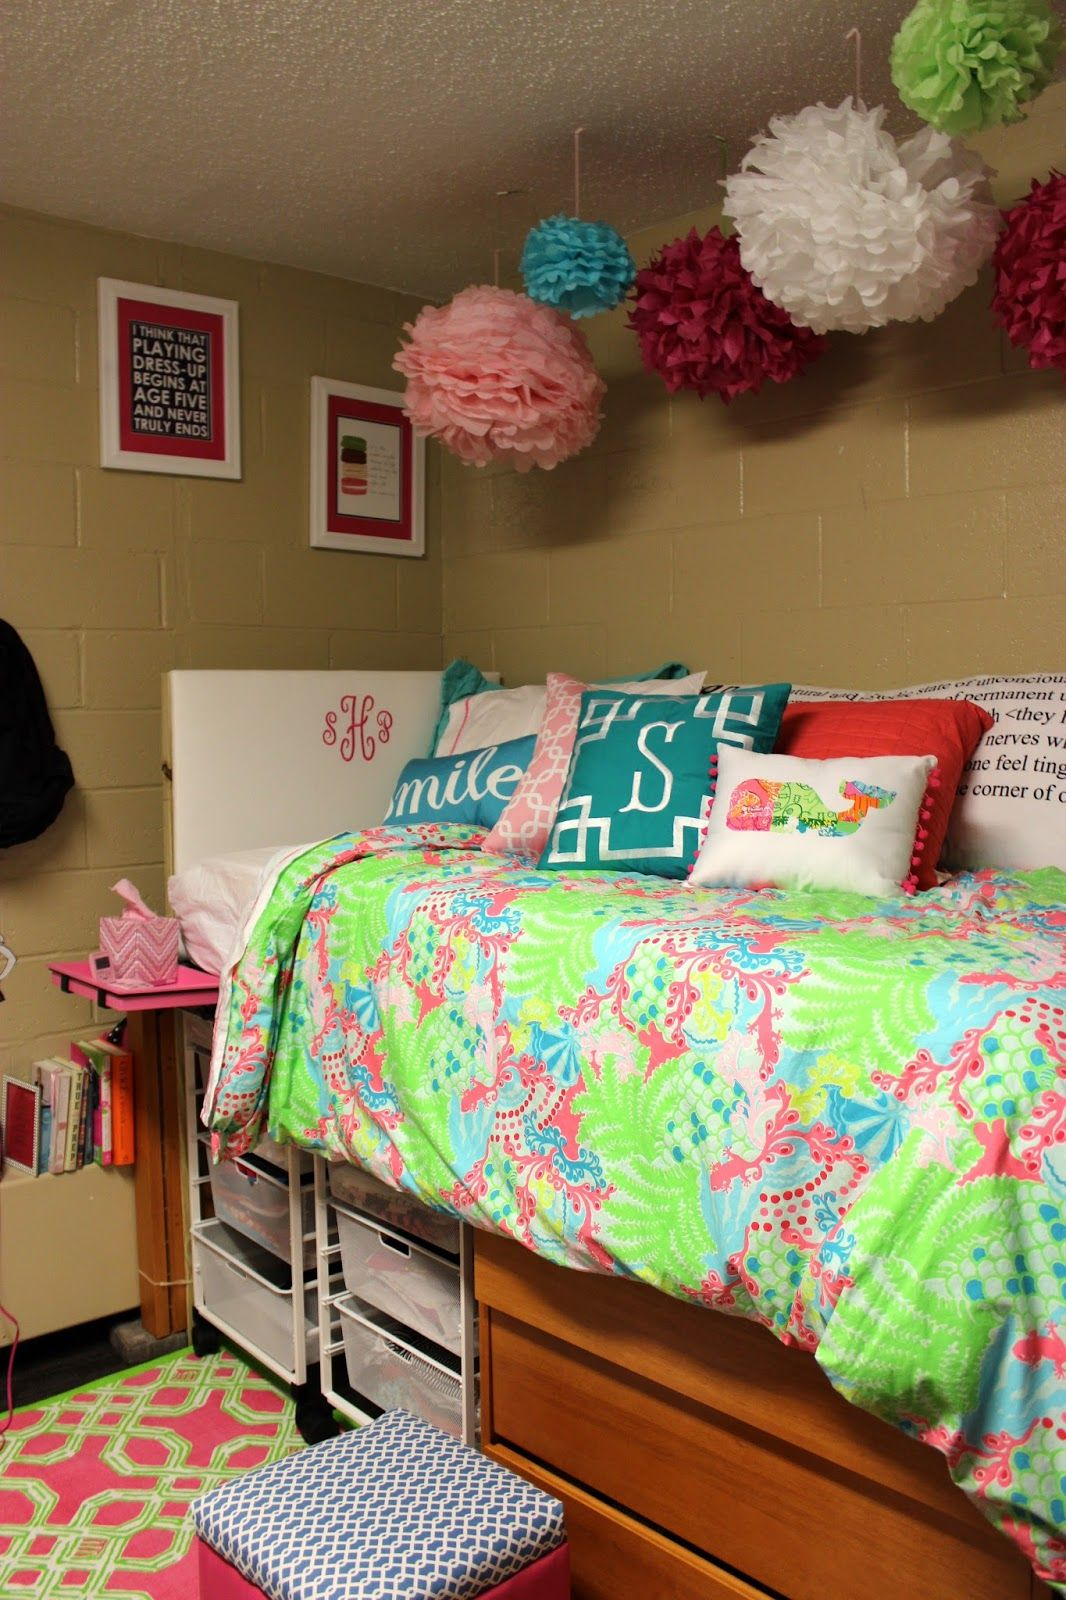 2 Preps Amp A Dorm Room College Room Preppy Dorm Room Room